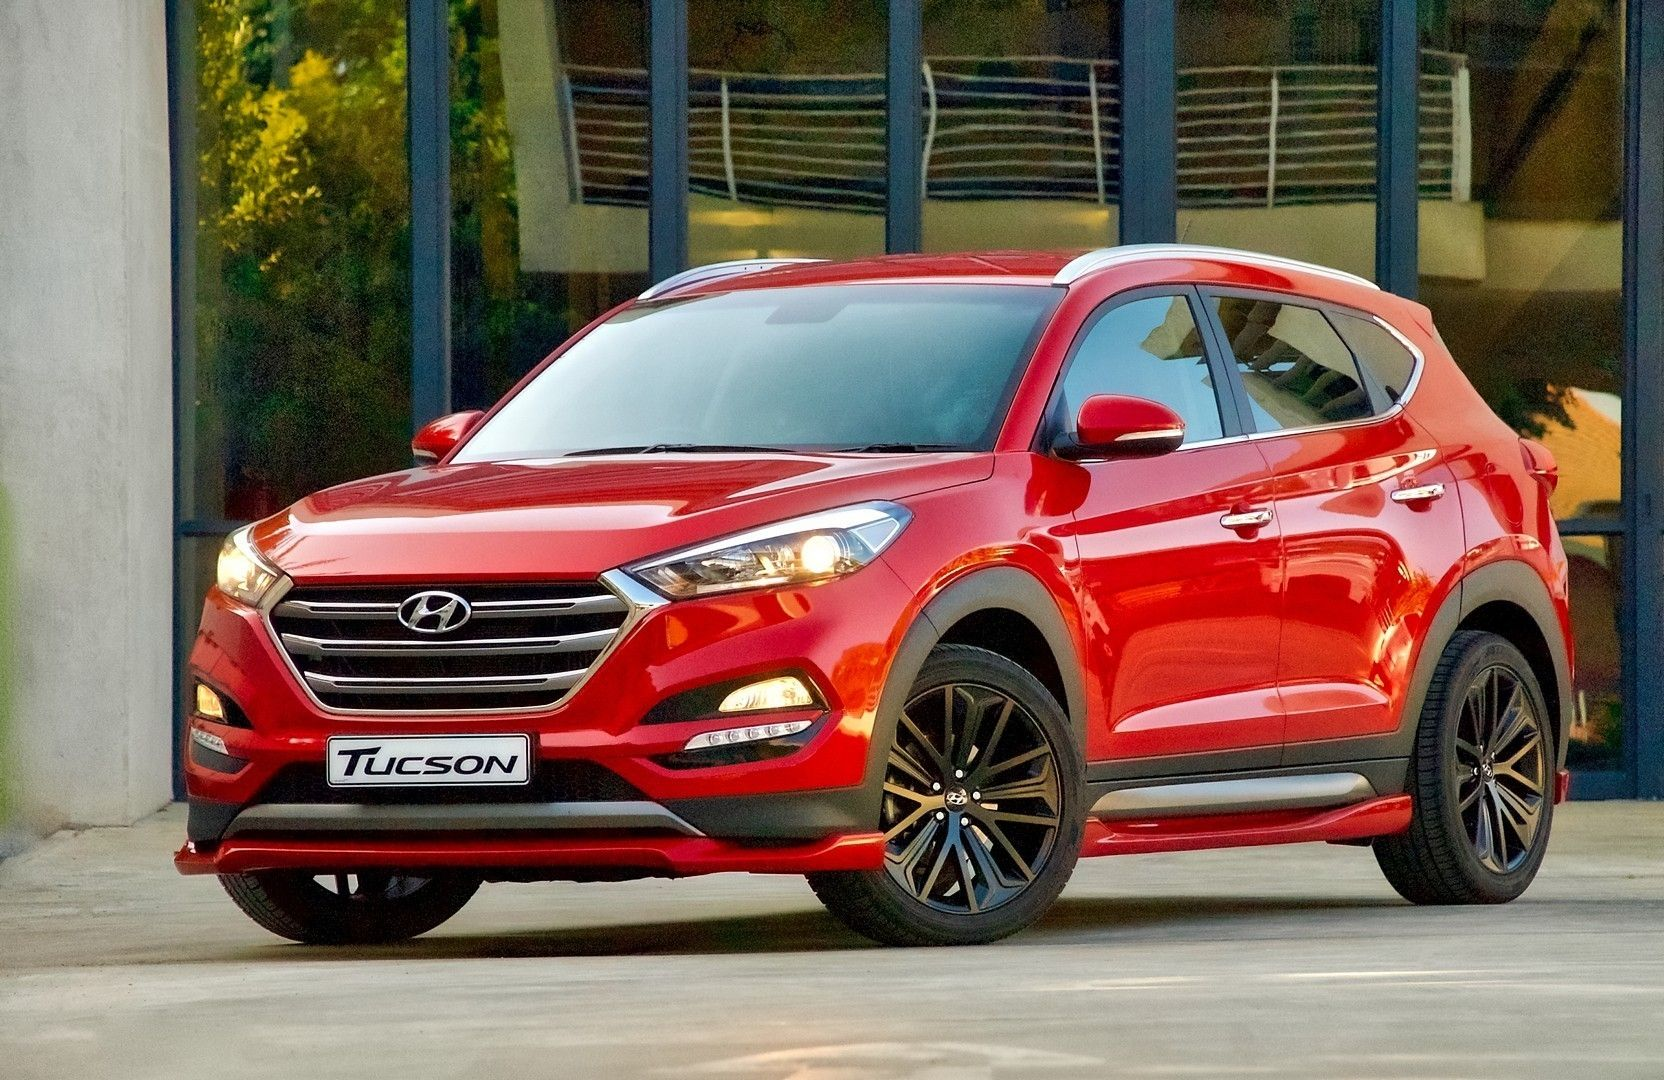 2018 Hyundai Tucson Specs And Review Hyundai Tucson Tucson Car